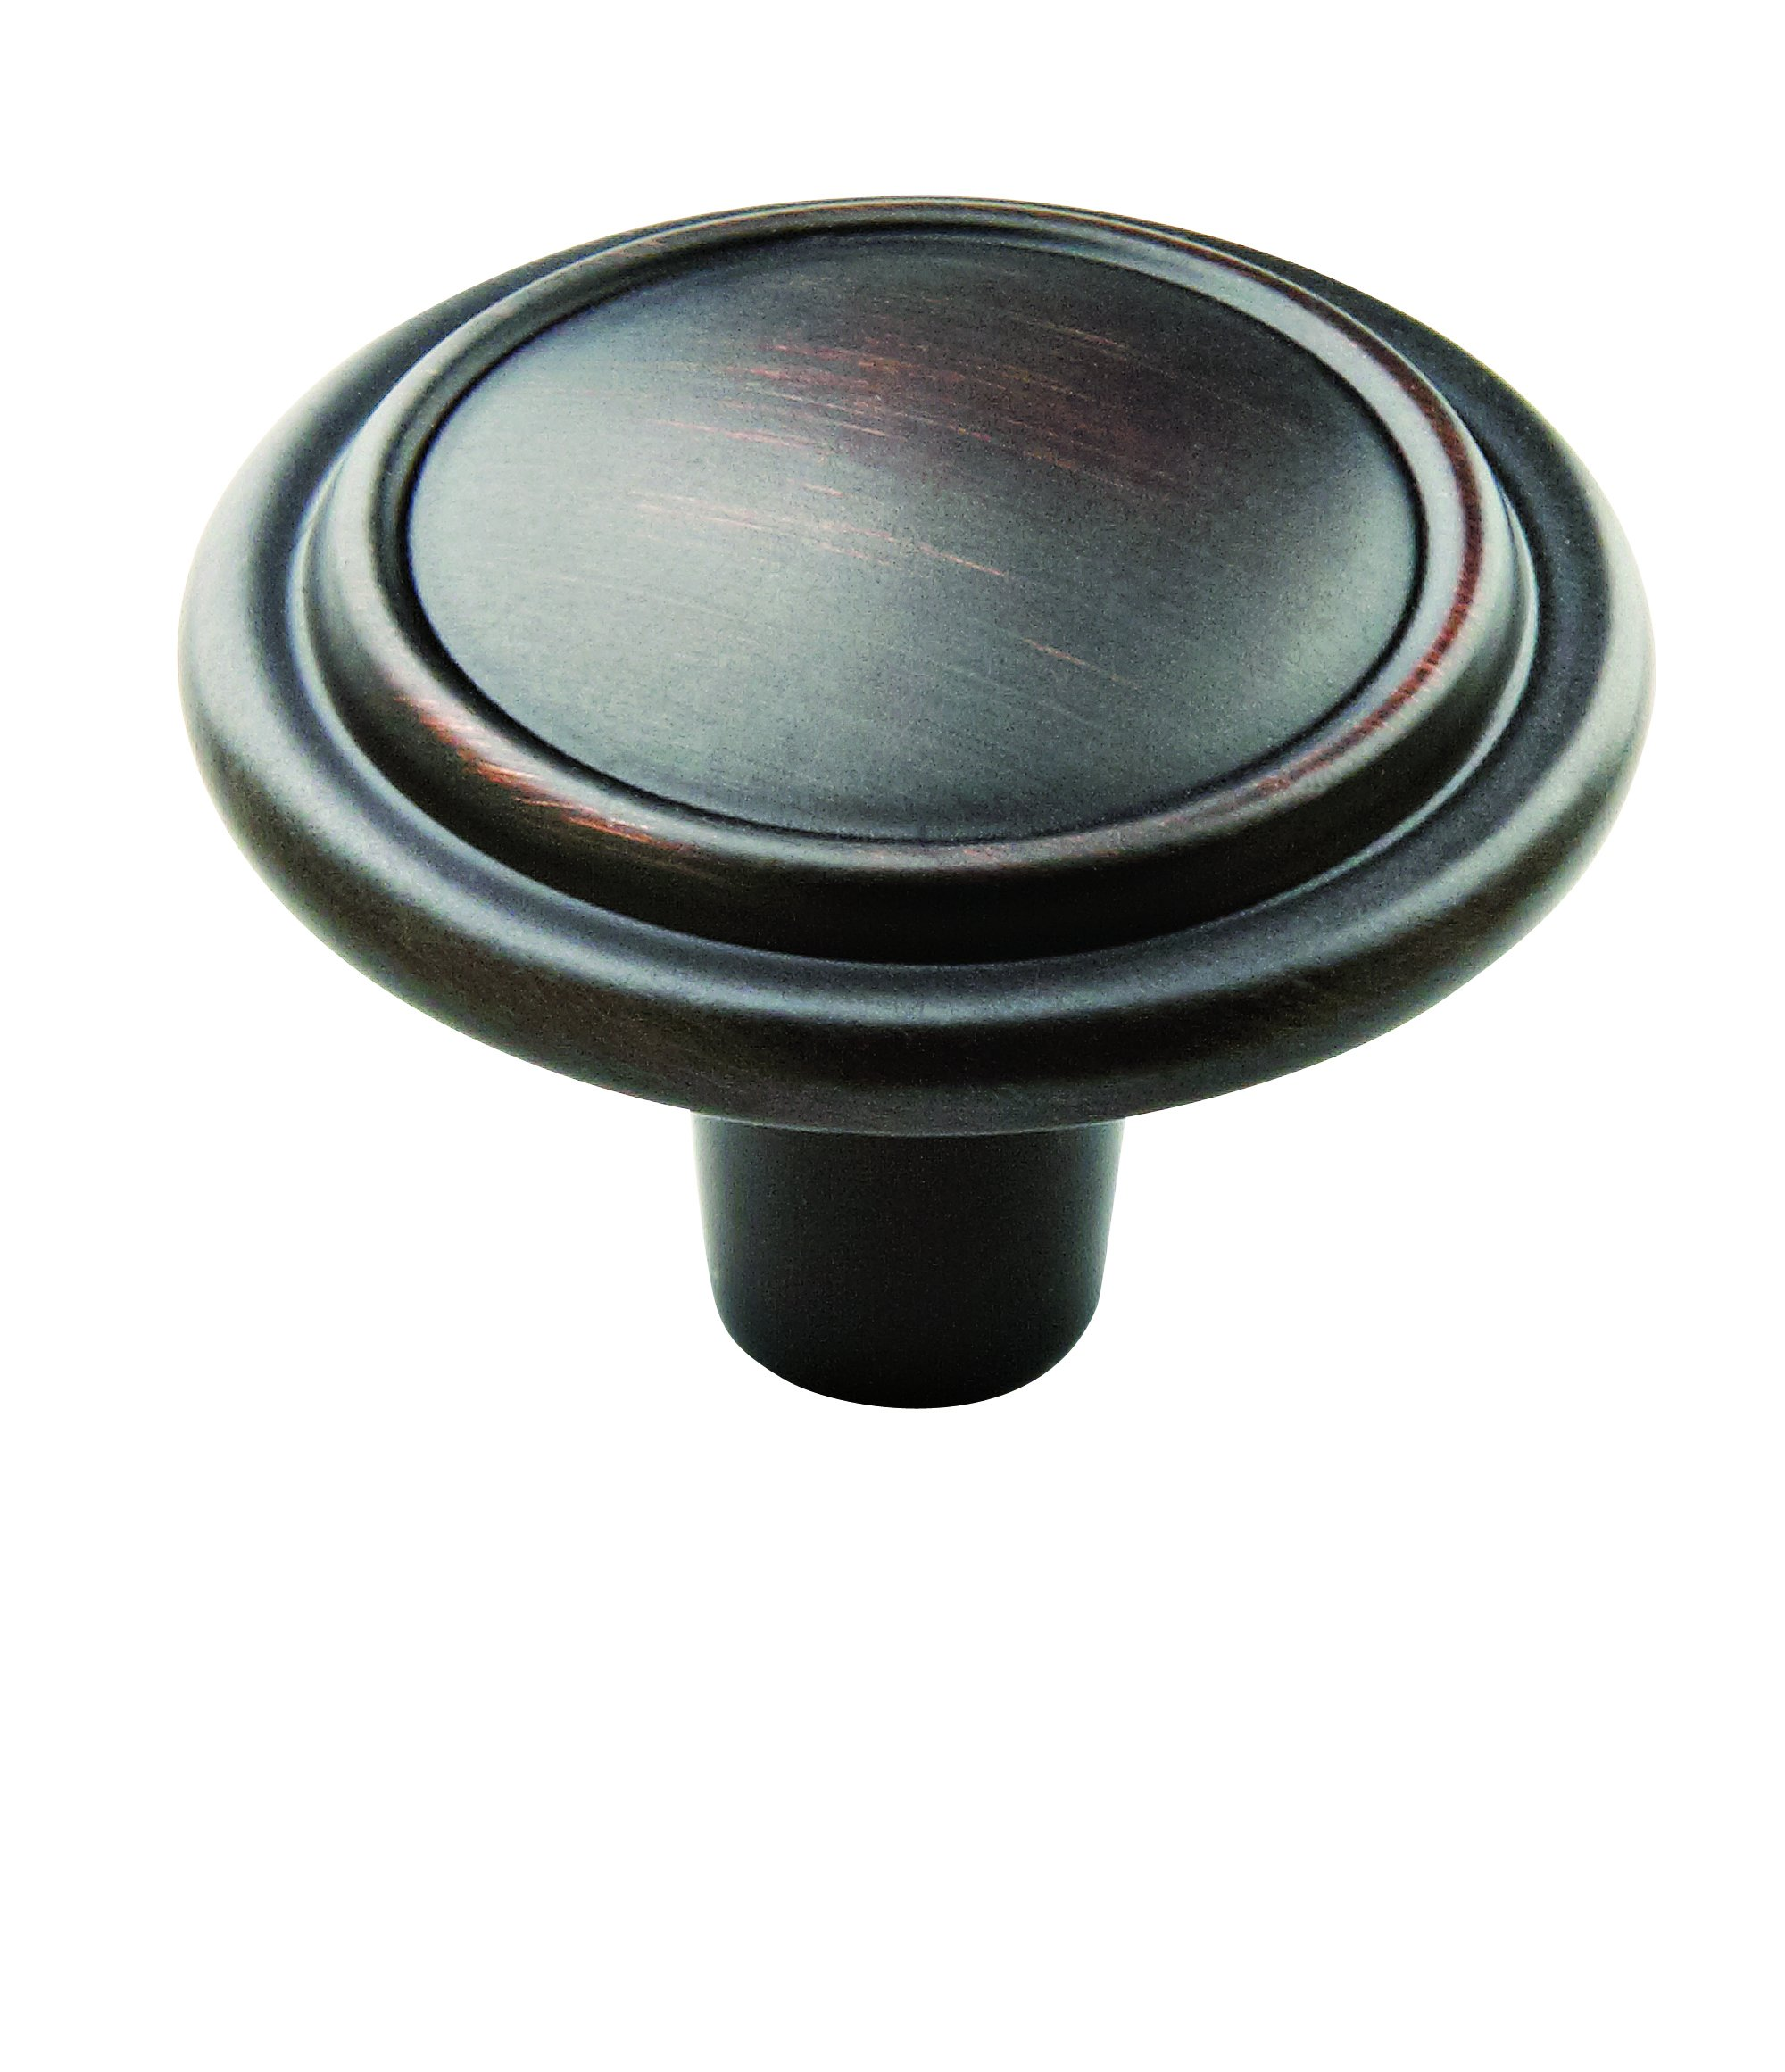 Allison Value 1-1/4 in (32 mm) Oil-Rubbed Bronze Cabinet Knob - 25 Pack